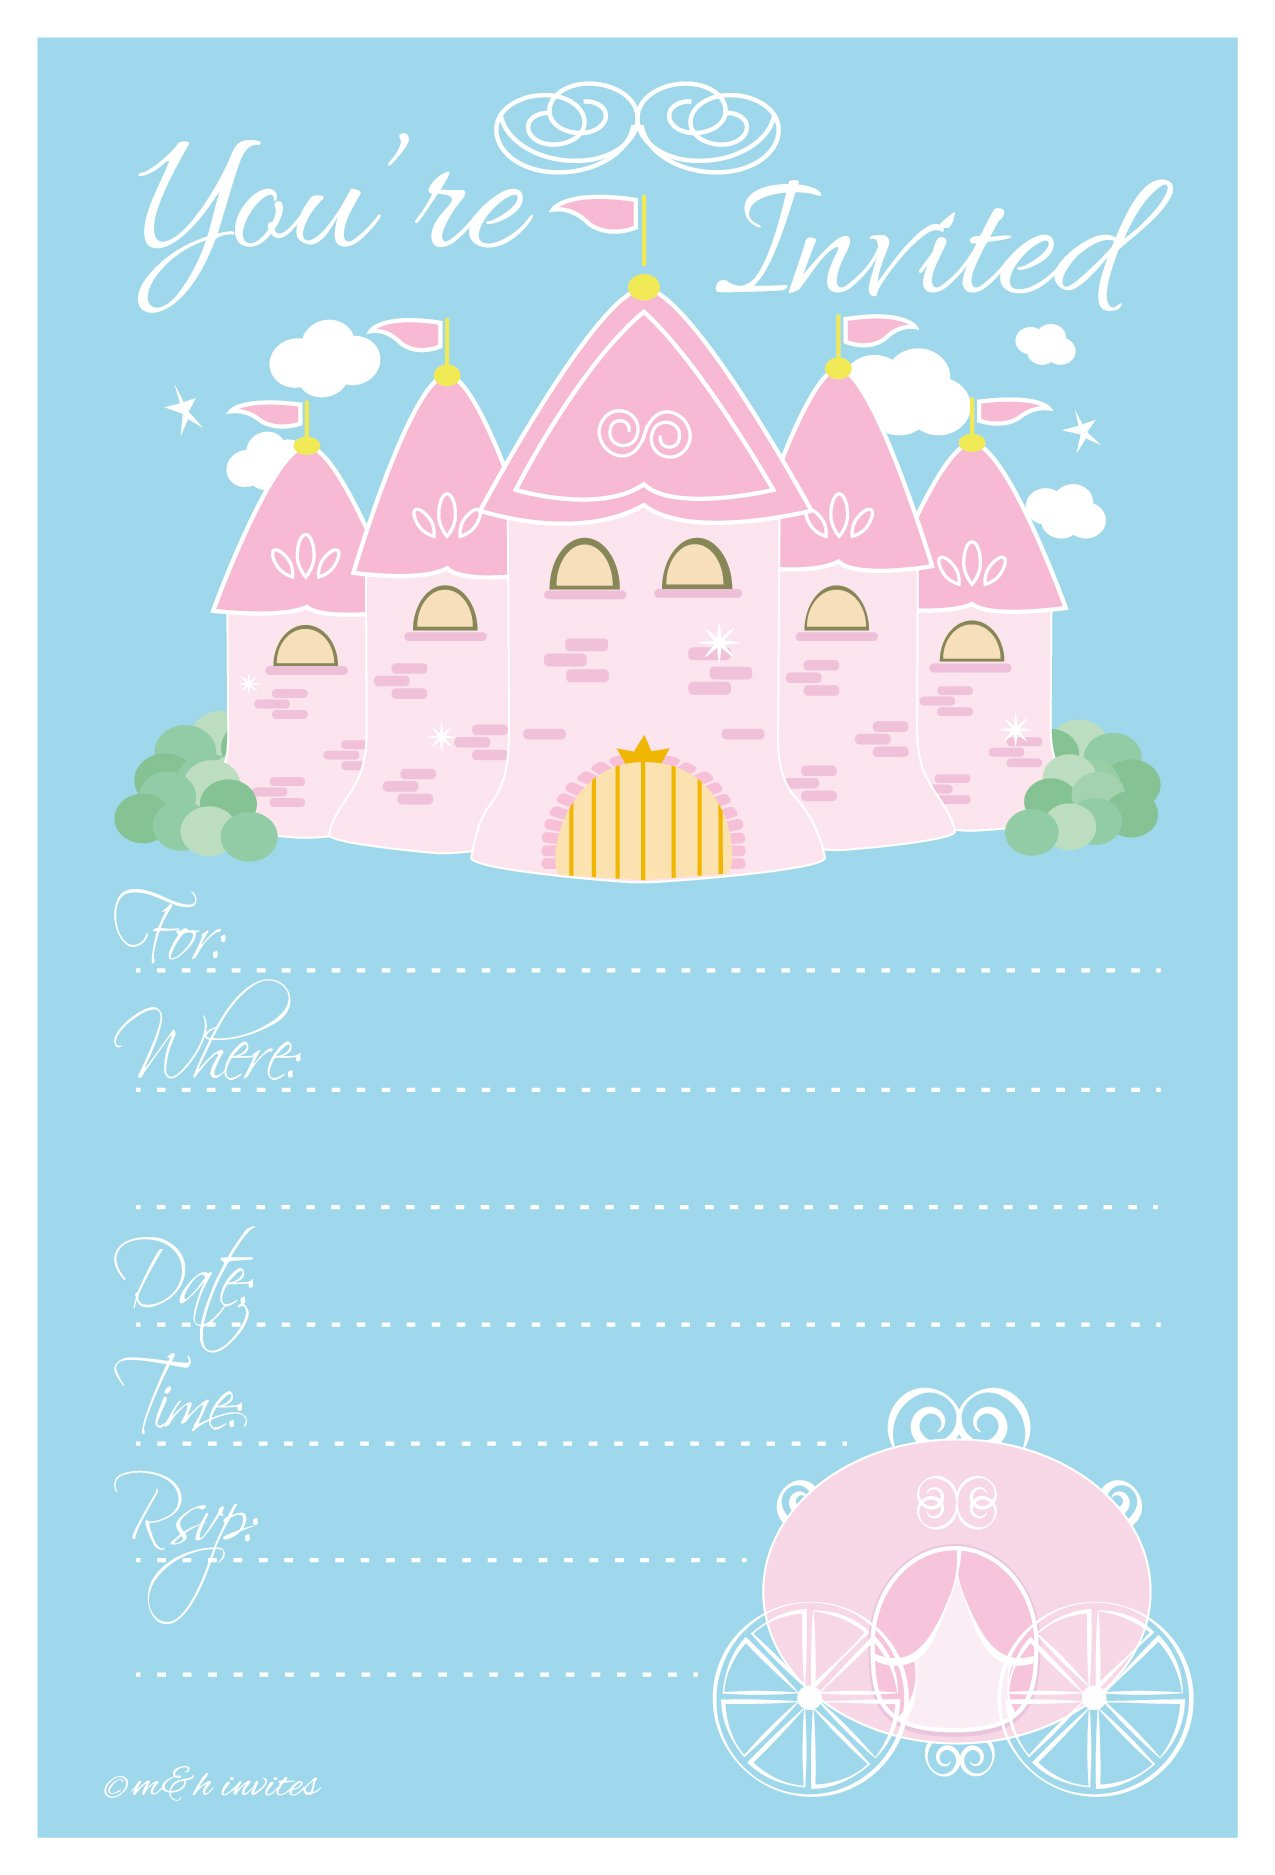 Princess Birthday Party Invitations - Fill In Style (20 Count) With Envelopes by m&h invites